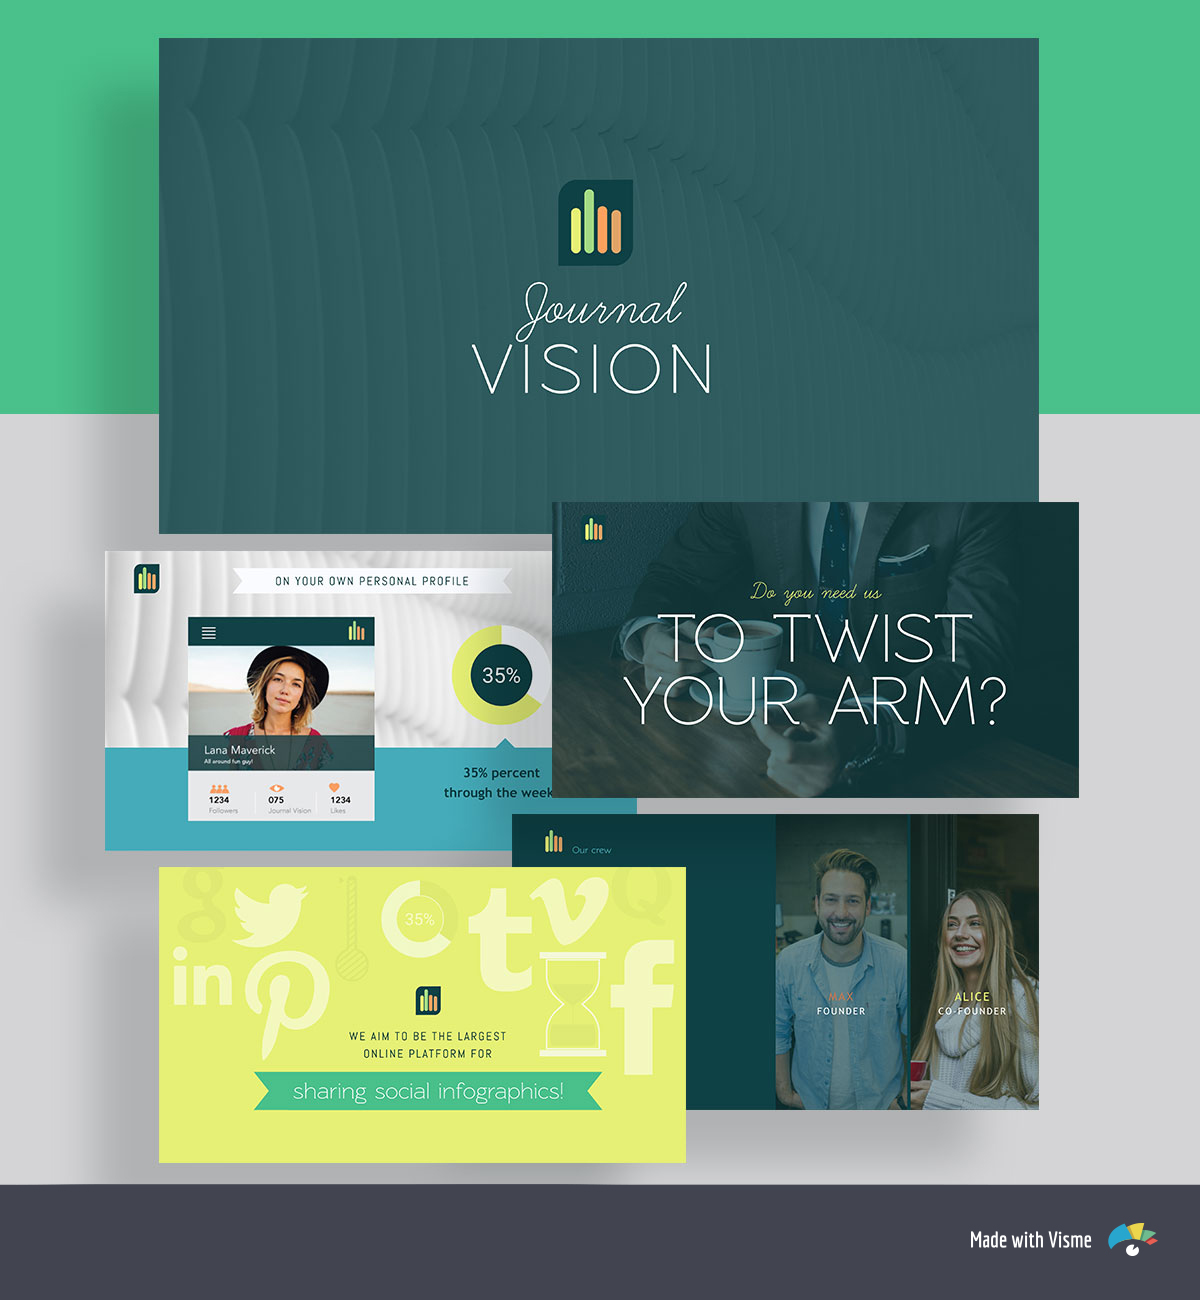 pitch deck template - biogrify journal vision